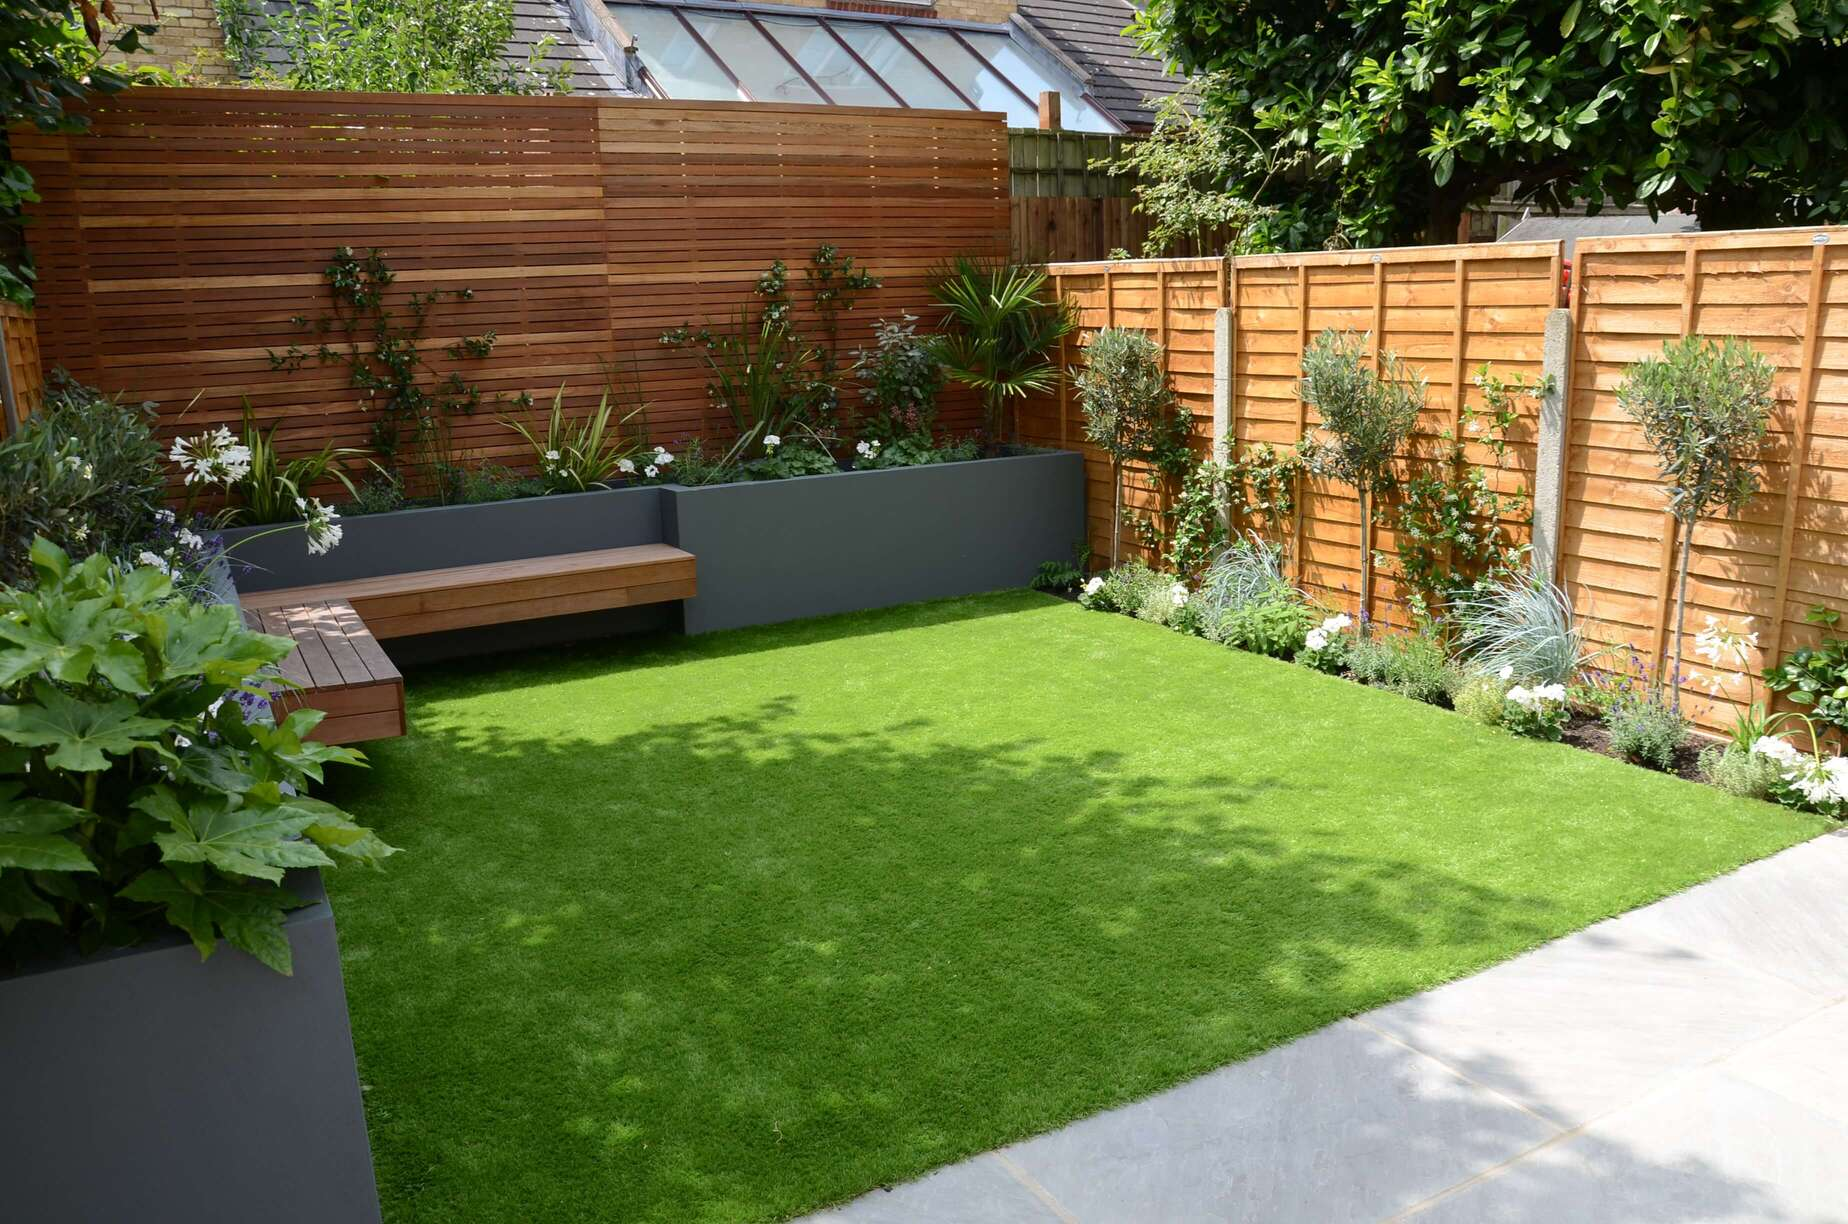 Few Small Garden Designs That You Can Have In Your Apartment on Patio And Grass Garden Ideas id=36447